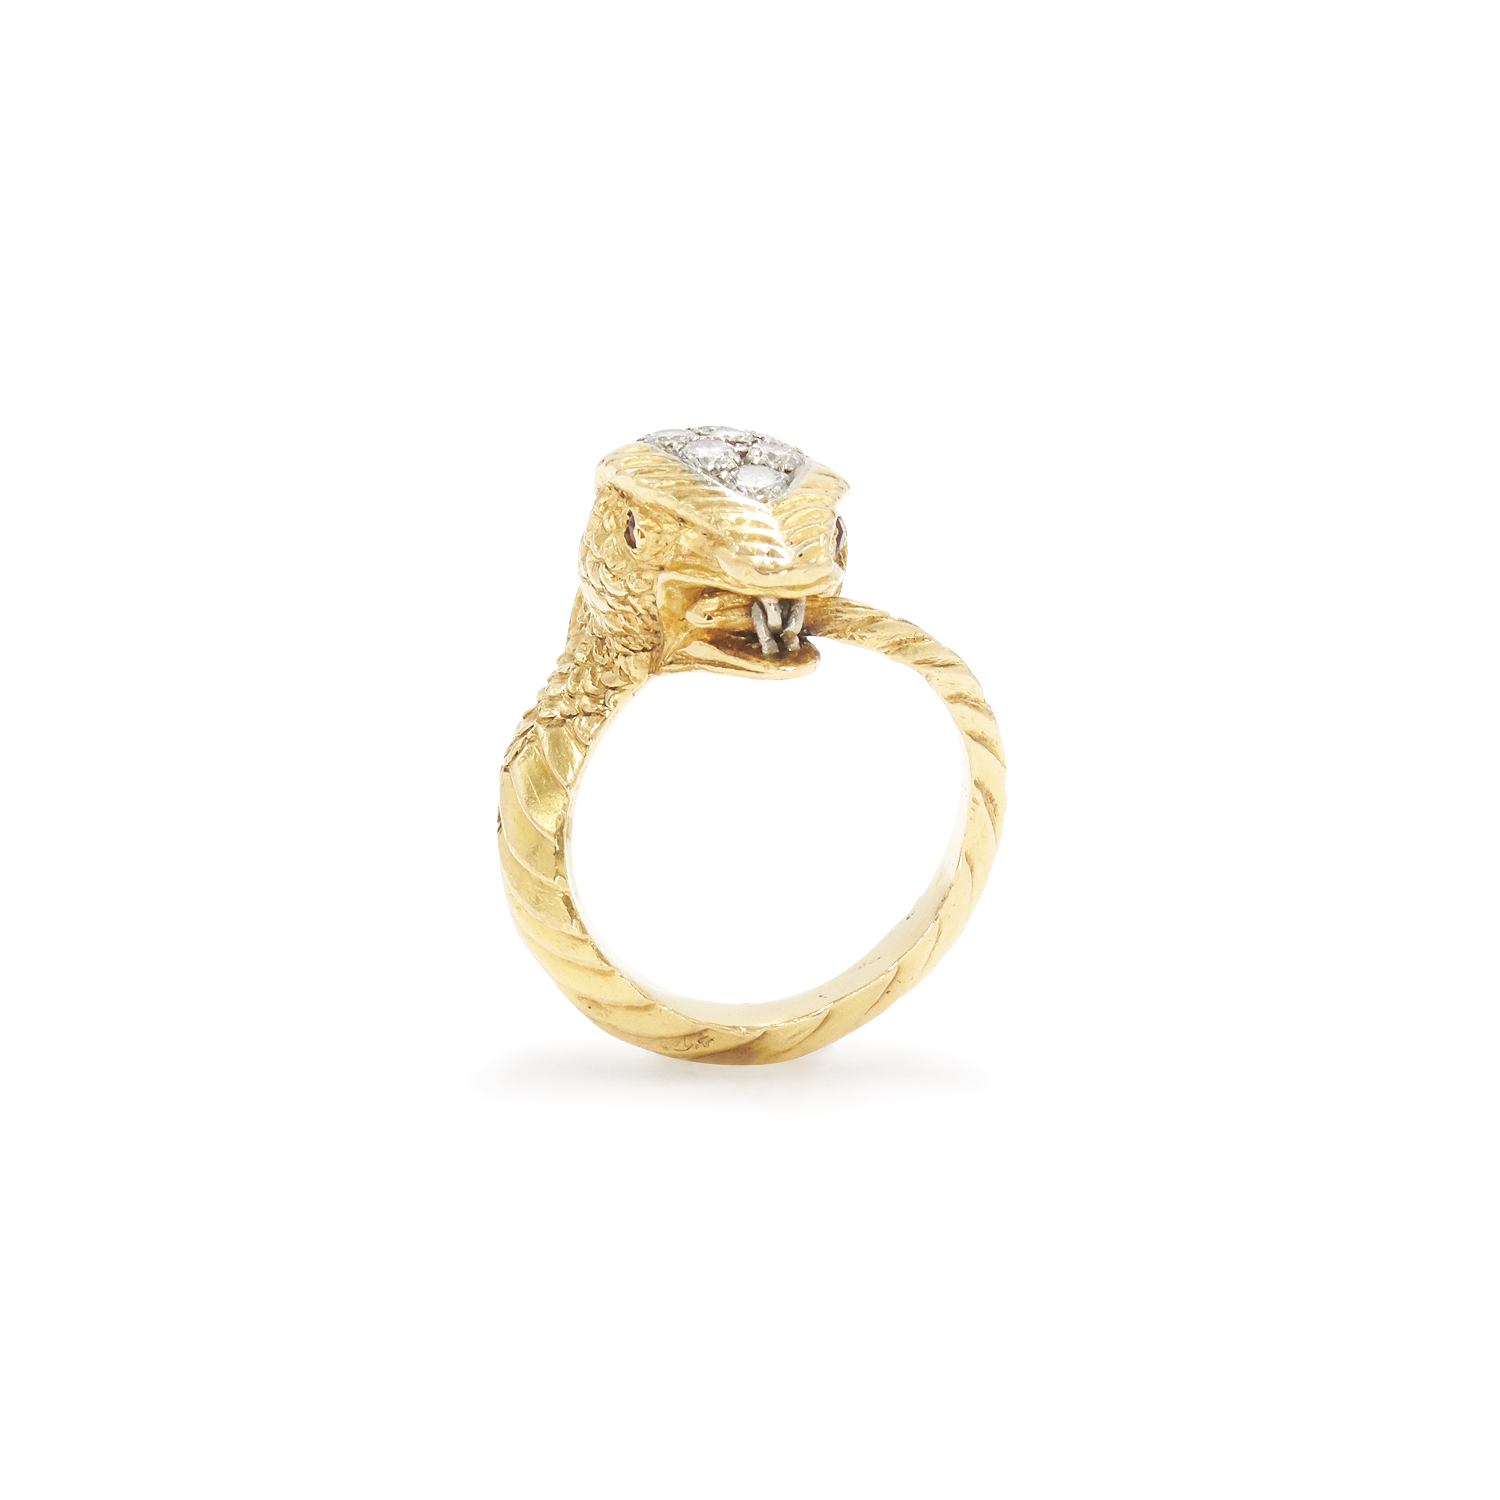 1970s Yellow Gold and Diamond Snake Ring Style R-29289-FL-0-0